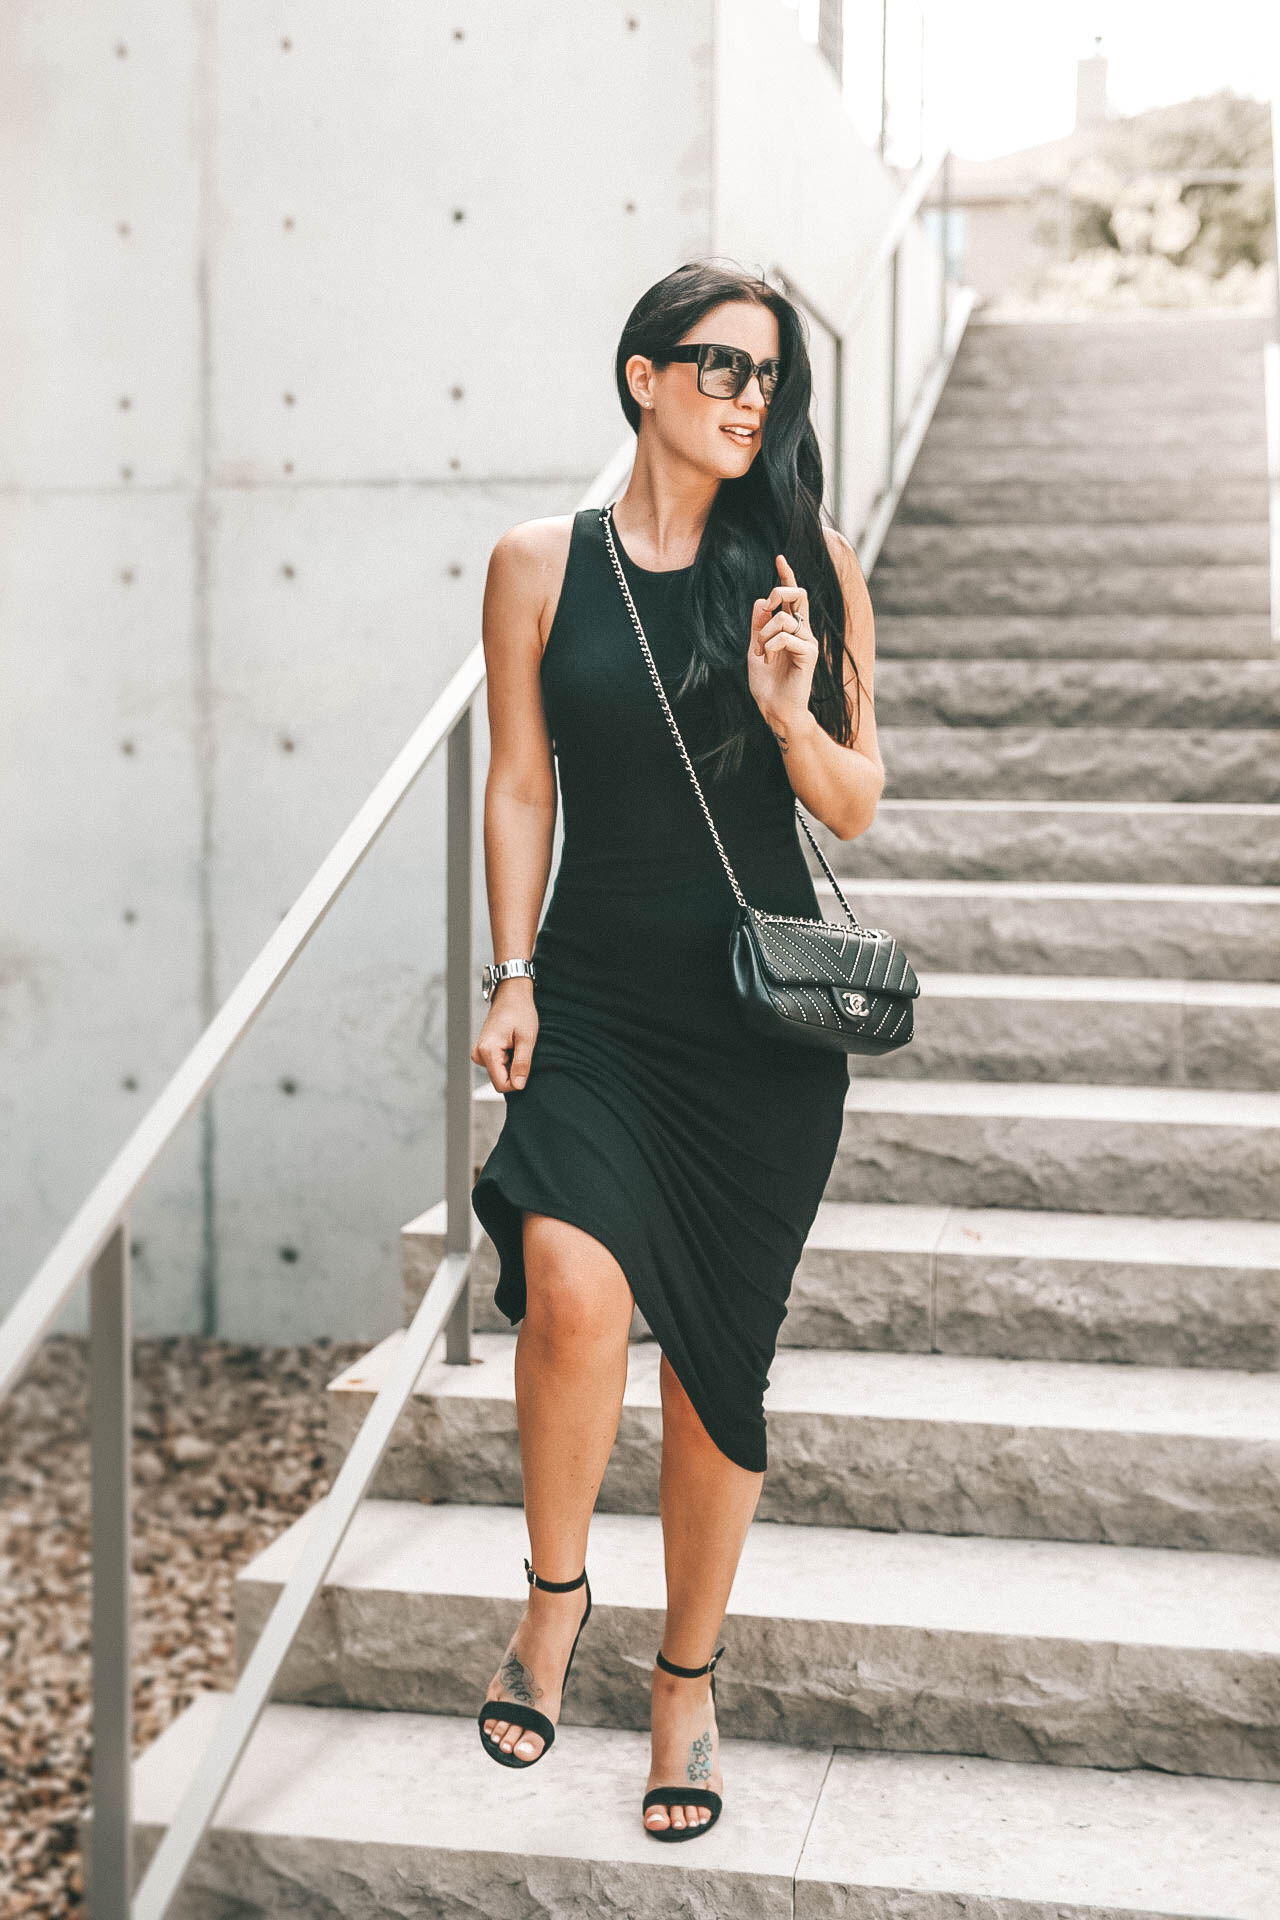 DTKAustin talks about one of her favorite new retailers at the Domain NORTHside. Marine Layer just opened and is offering a 20% discount with code DOMAINNORTHSIDE. | little black dress style | how to style a black dress | summer dresses || Dressed to Kill #fashion #style #outfits #lbd #blackdress #dresses #dtkaustin - {Marine Layer at Domain NORTHside + 20% off Discount} featured by popular Austin fashion blogger Dressed to Kill